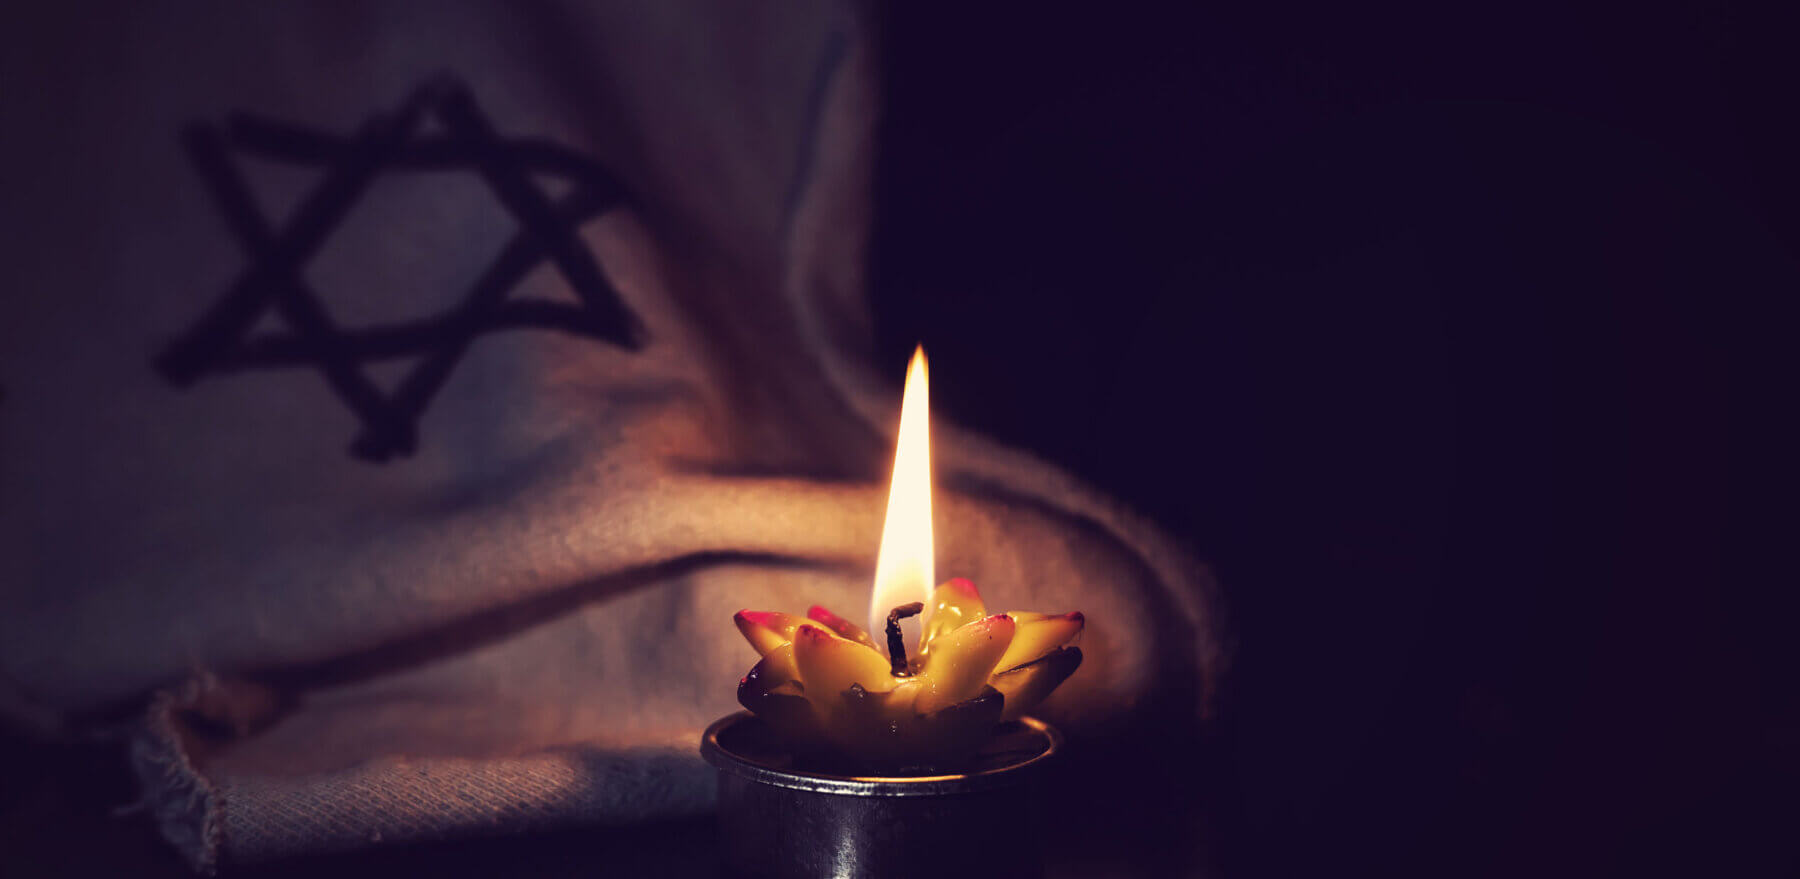 The star of David and candle stands on the table on a black background in memory of the victims of the Holocaust and genocide.